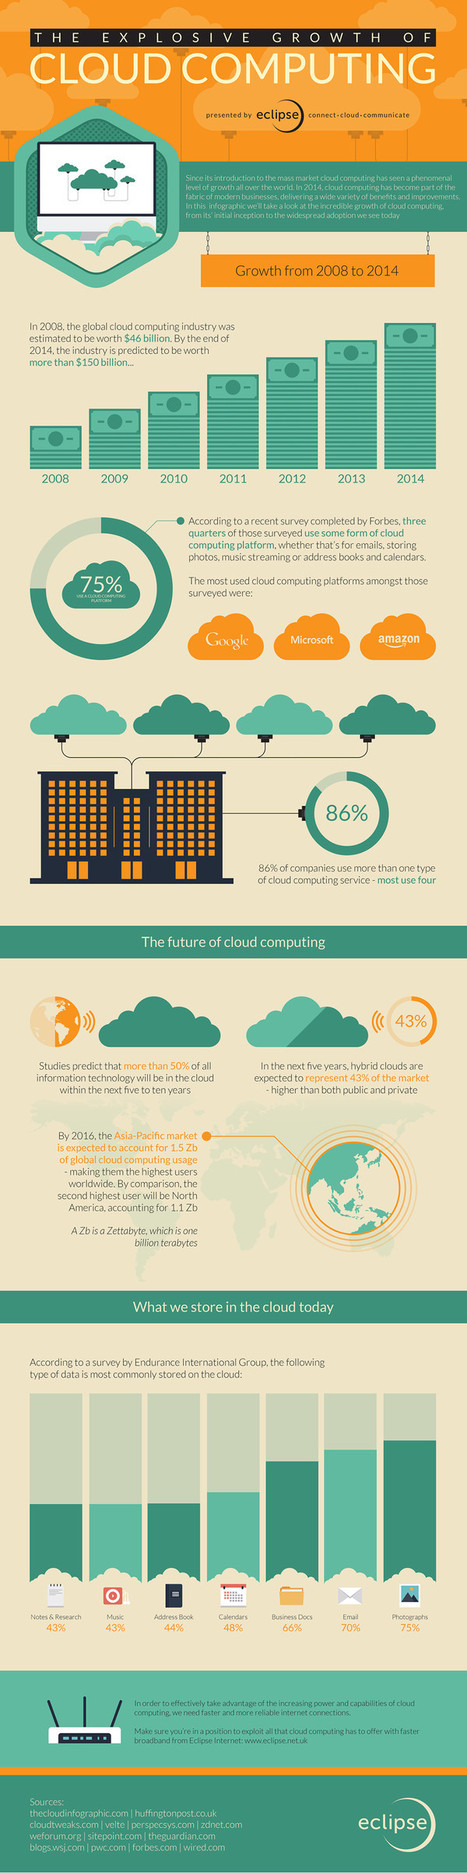 The Explosive Growth of Cloud Computing | Social Media Today | Information Technology & Social Media News | Scoop.it